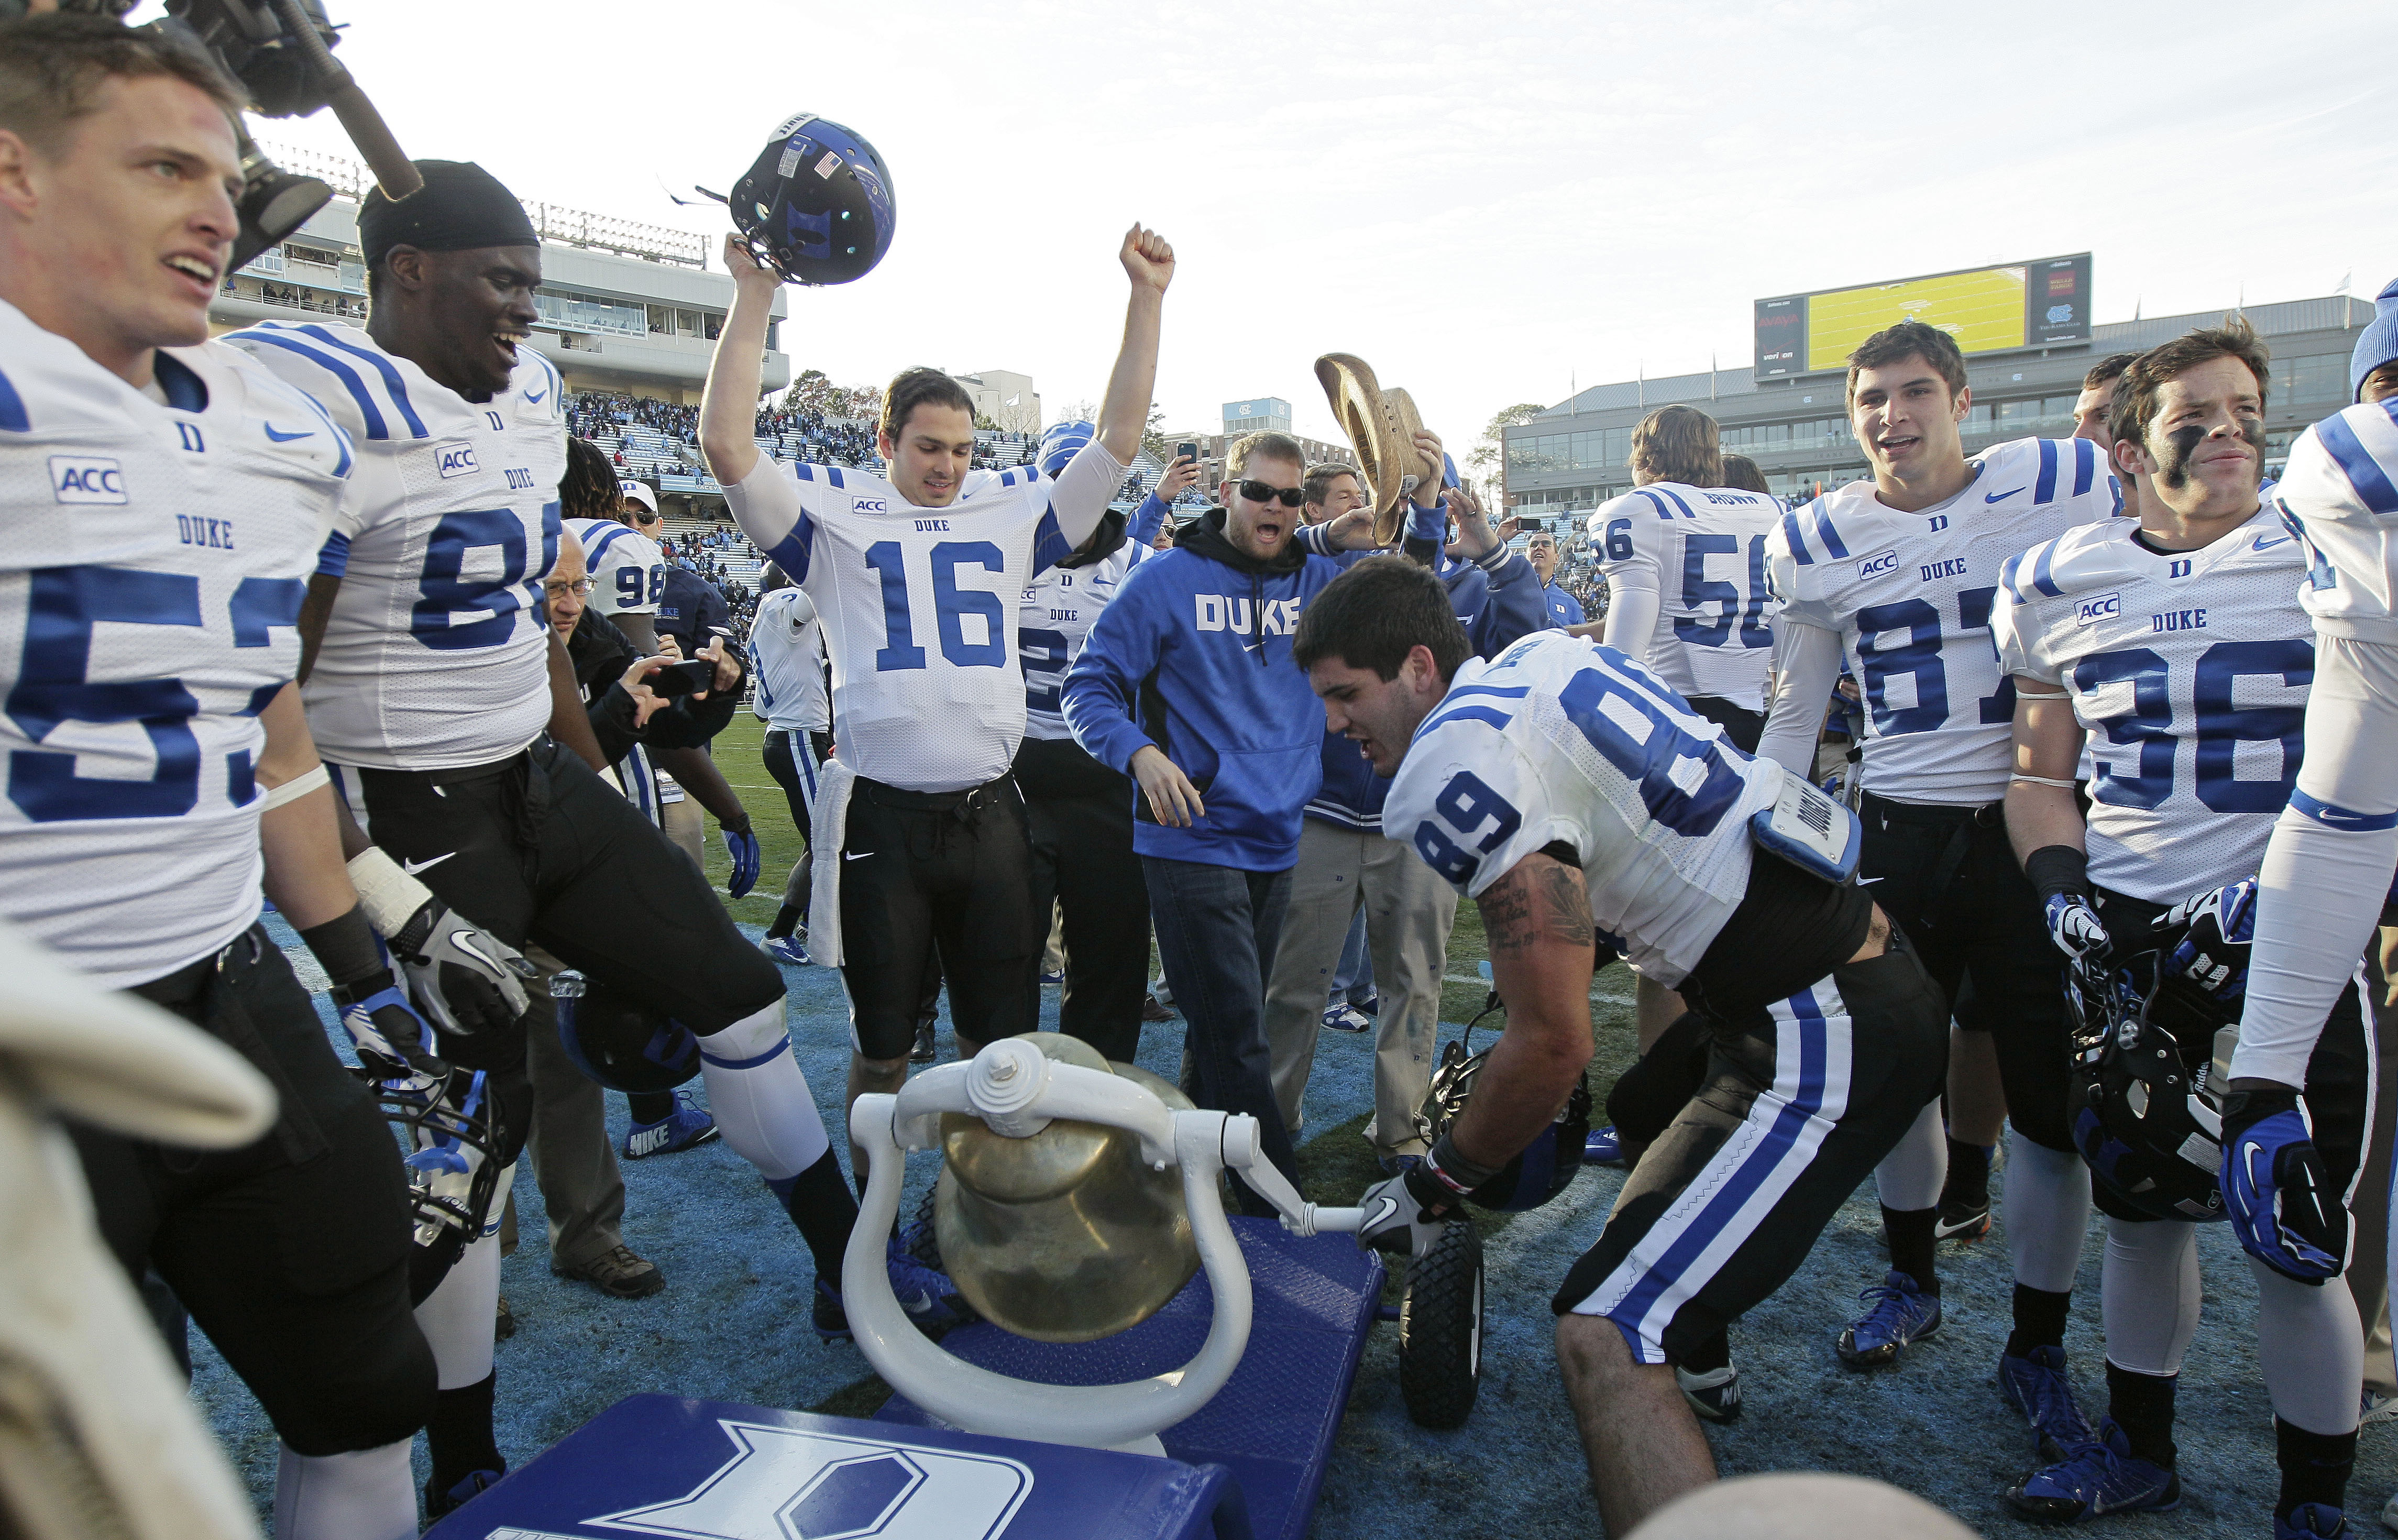 FILE - In this Nov. 30, 2013, file photo,  Duke's Braxton Deaver (89) rings the victory bell with teammates following Duke's 27-25 win over North Carolina in an NCAA college football game in Chapel Hill, N.C. Deaver, a 23-year-old, sixth-year tight end at